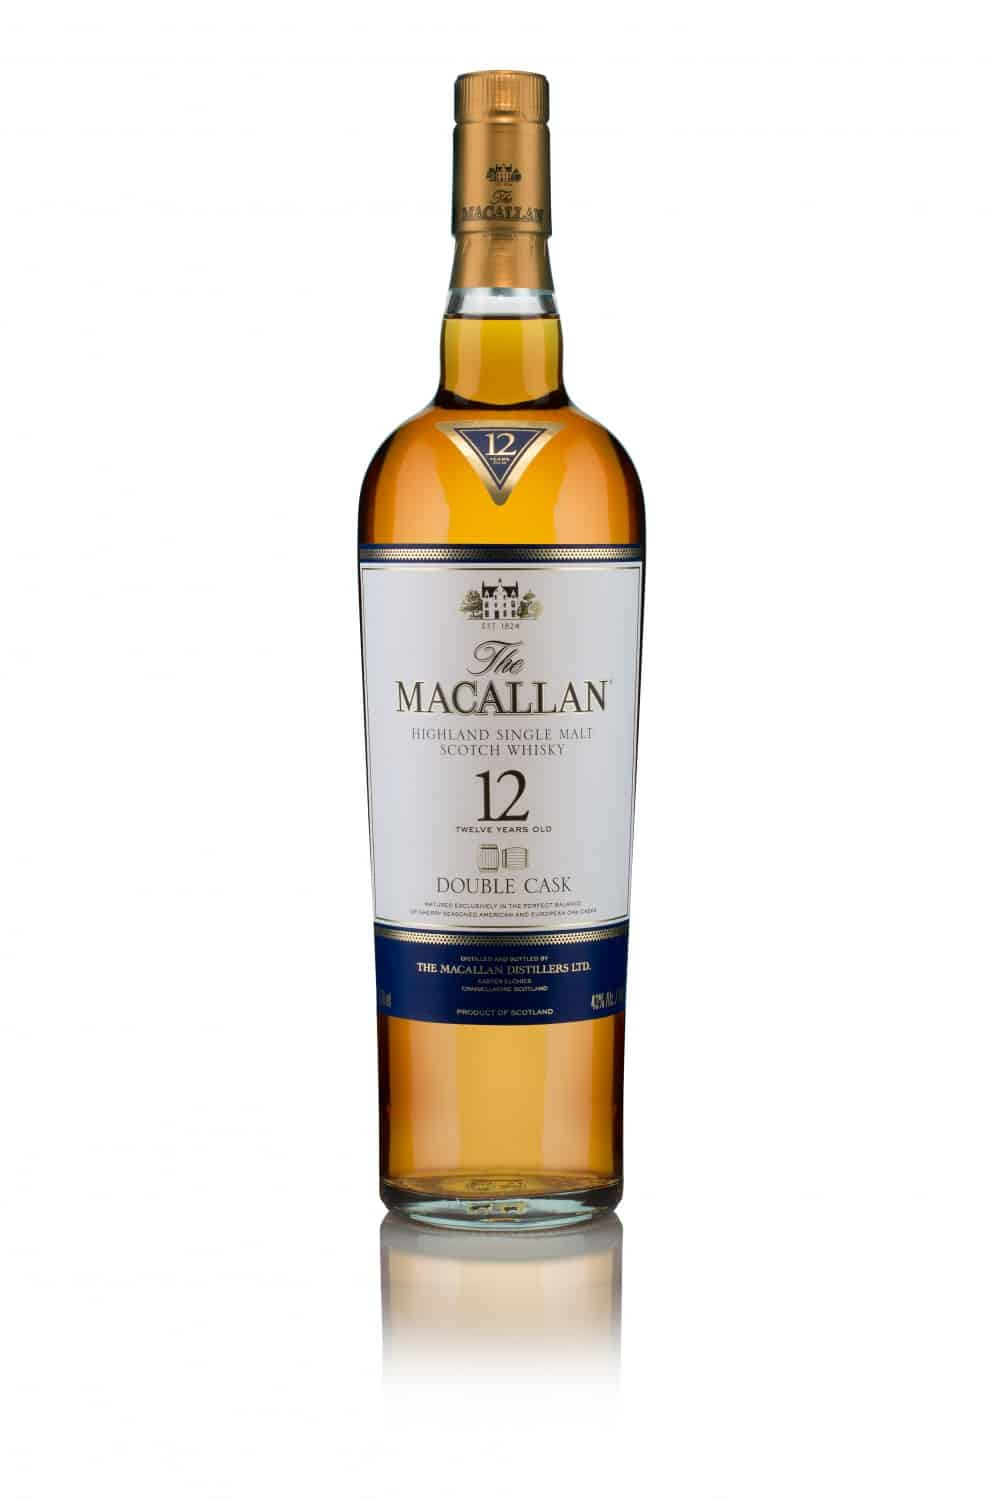 The Macallan 12YO Double Cask